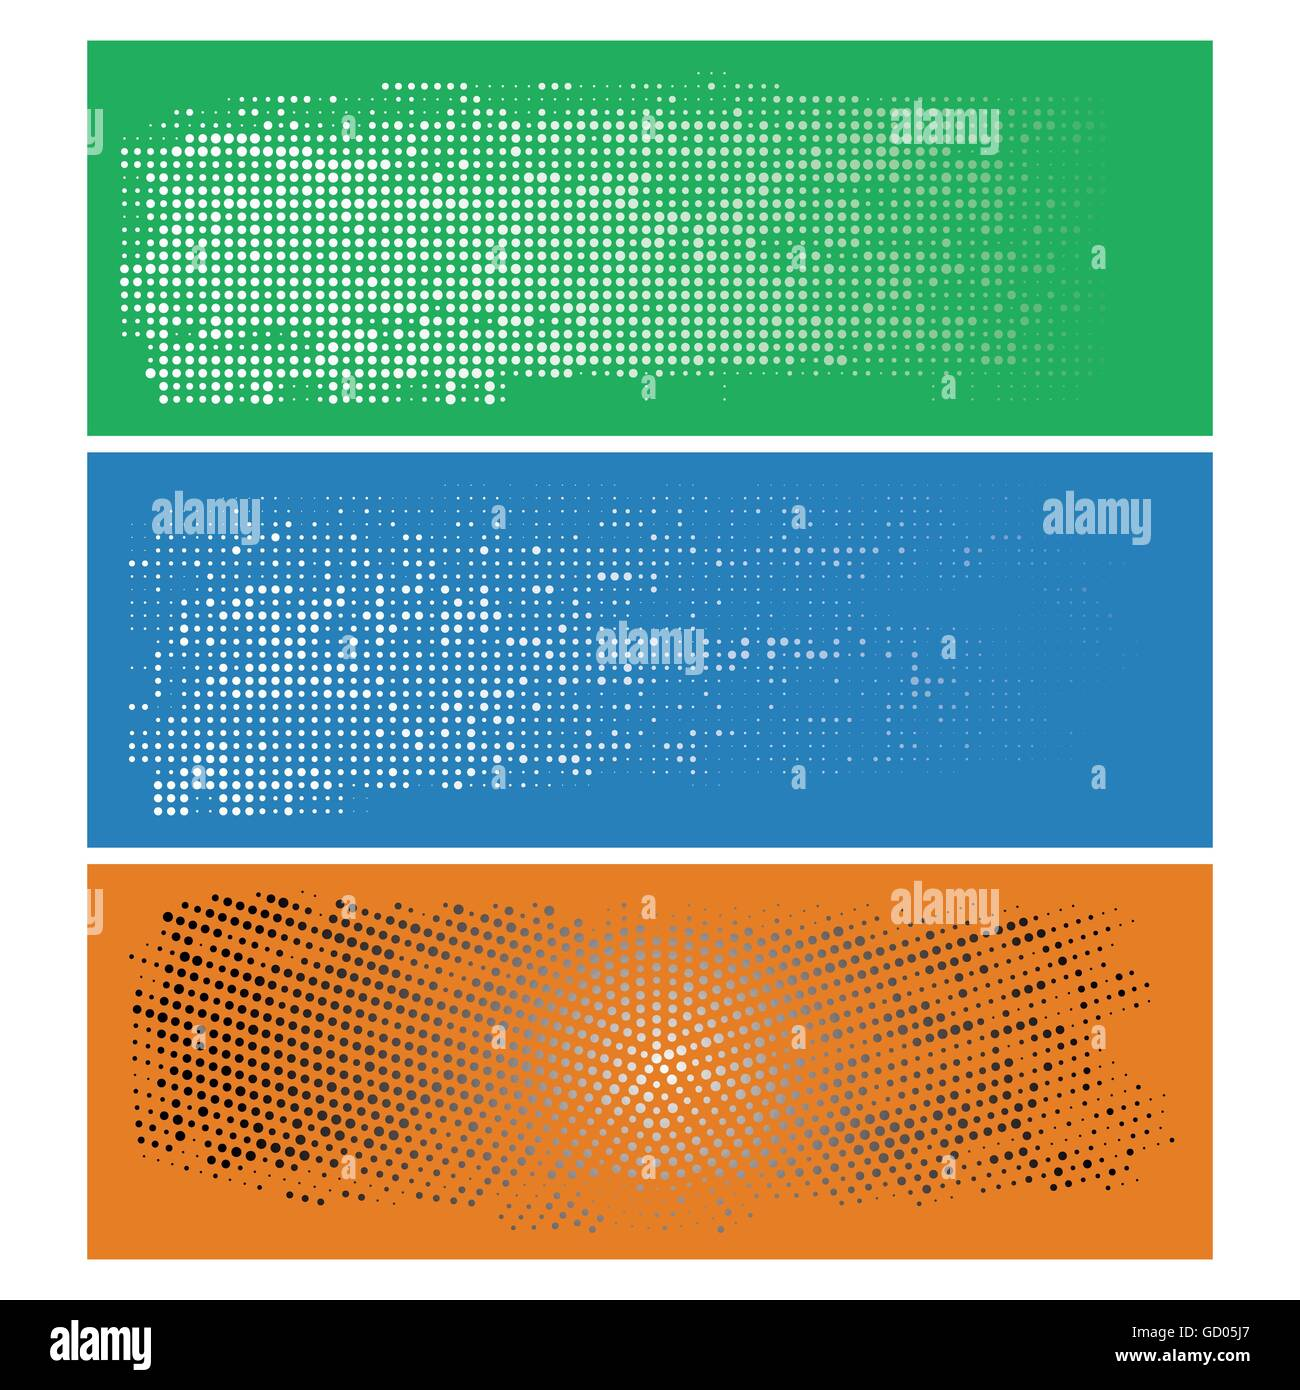 Set of Vintage Abstract Halftone Backgrounds. Vector Illustration. Radial and Linear Halftone. - Stock Image